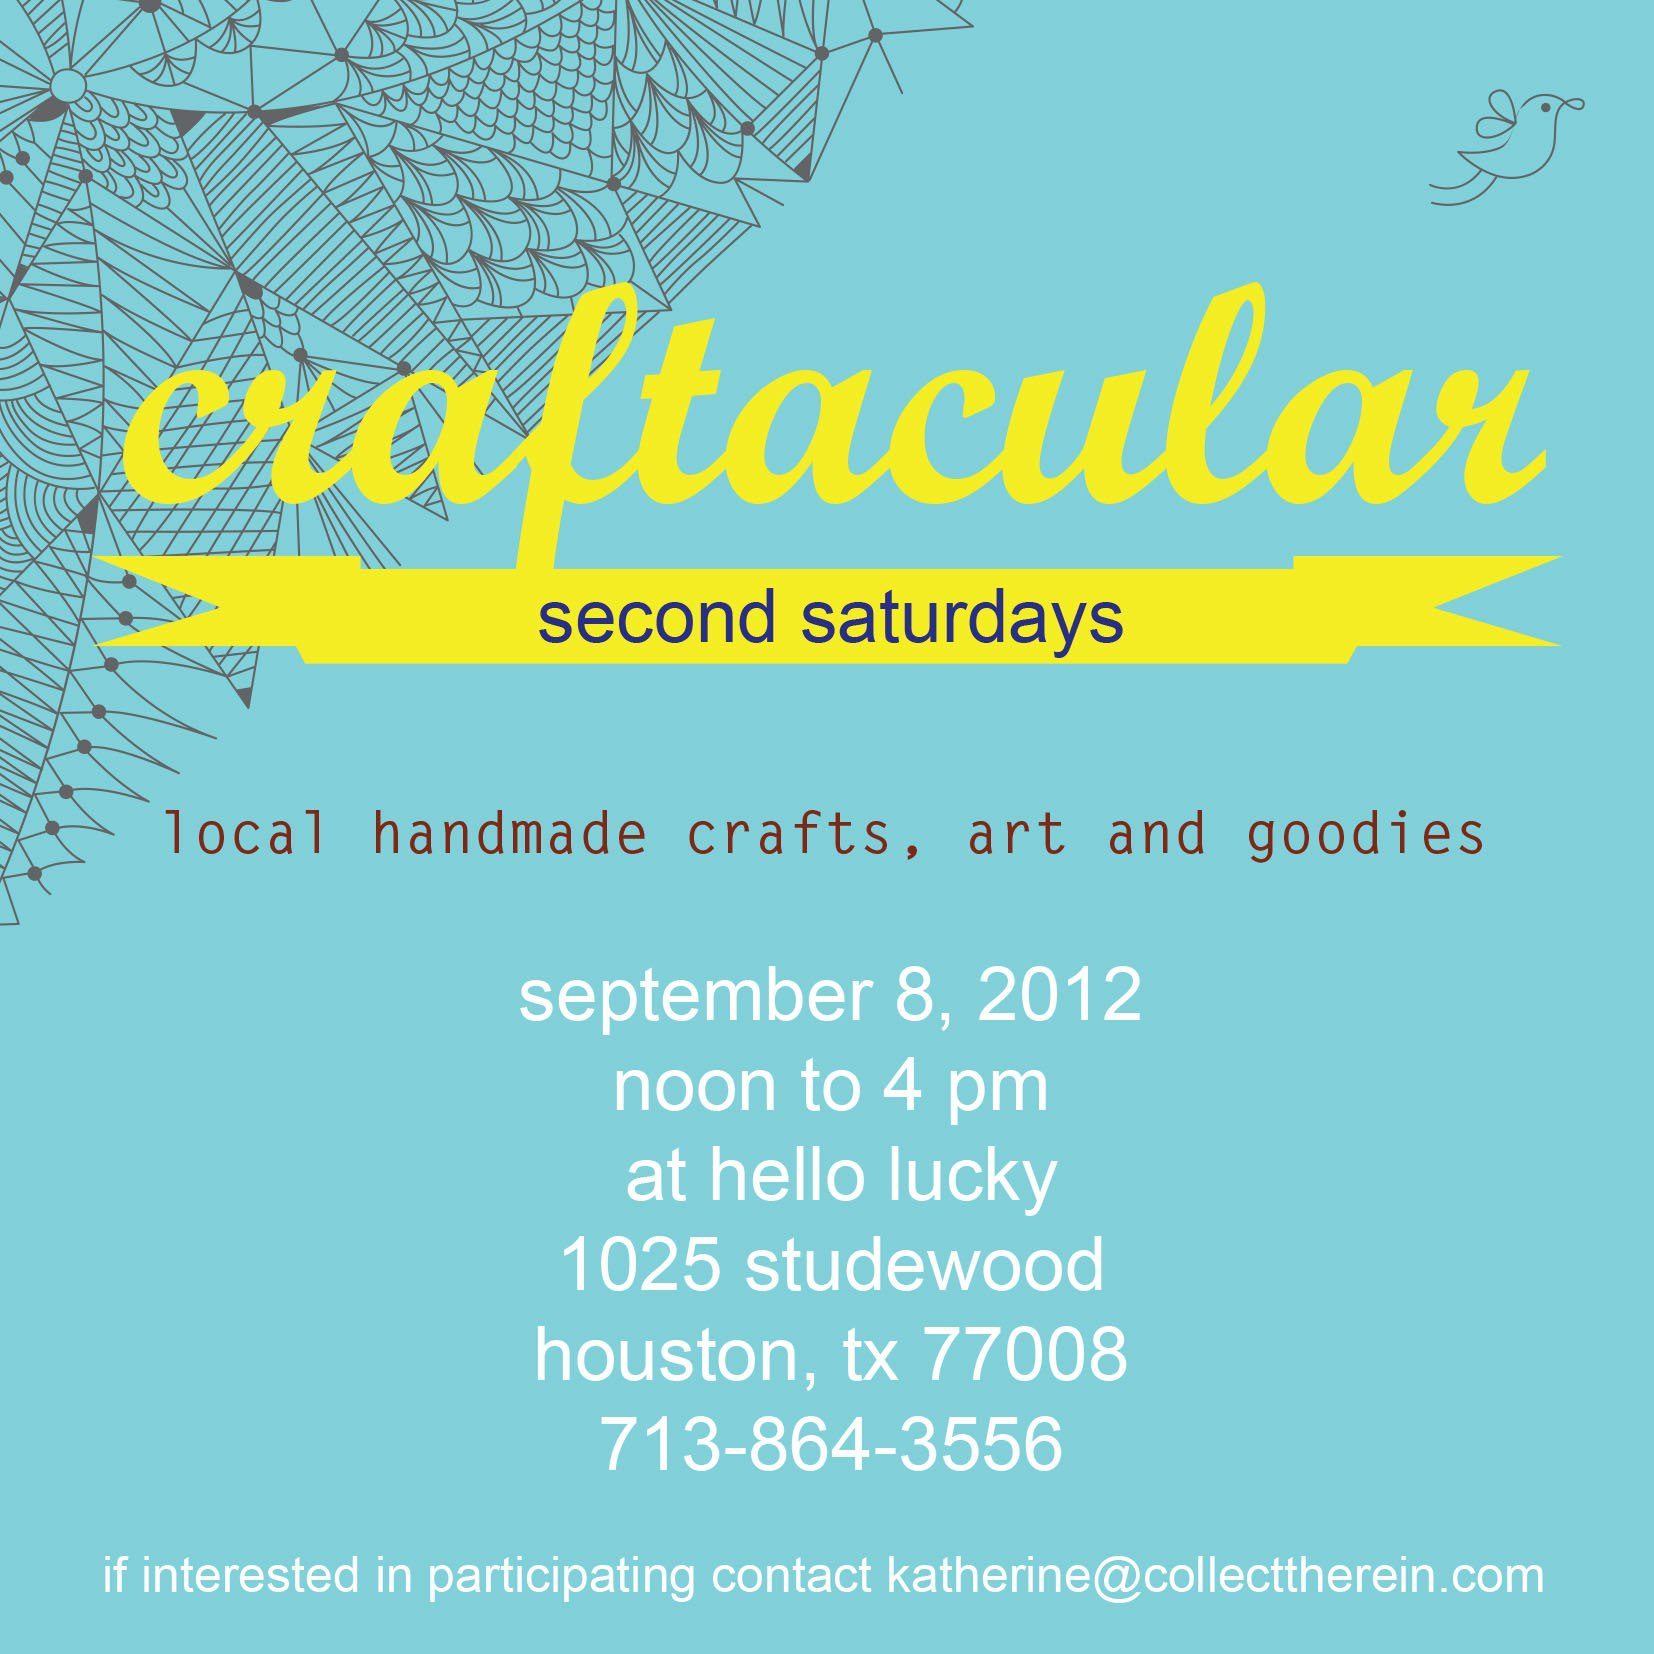 Craftacular Second Saturdays